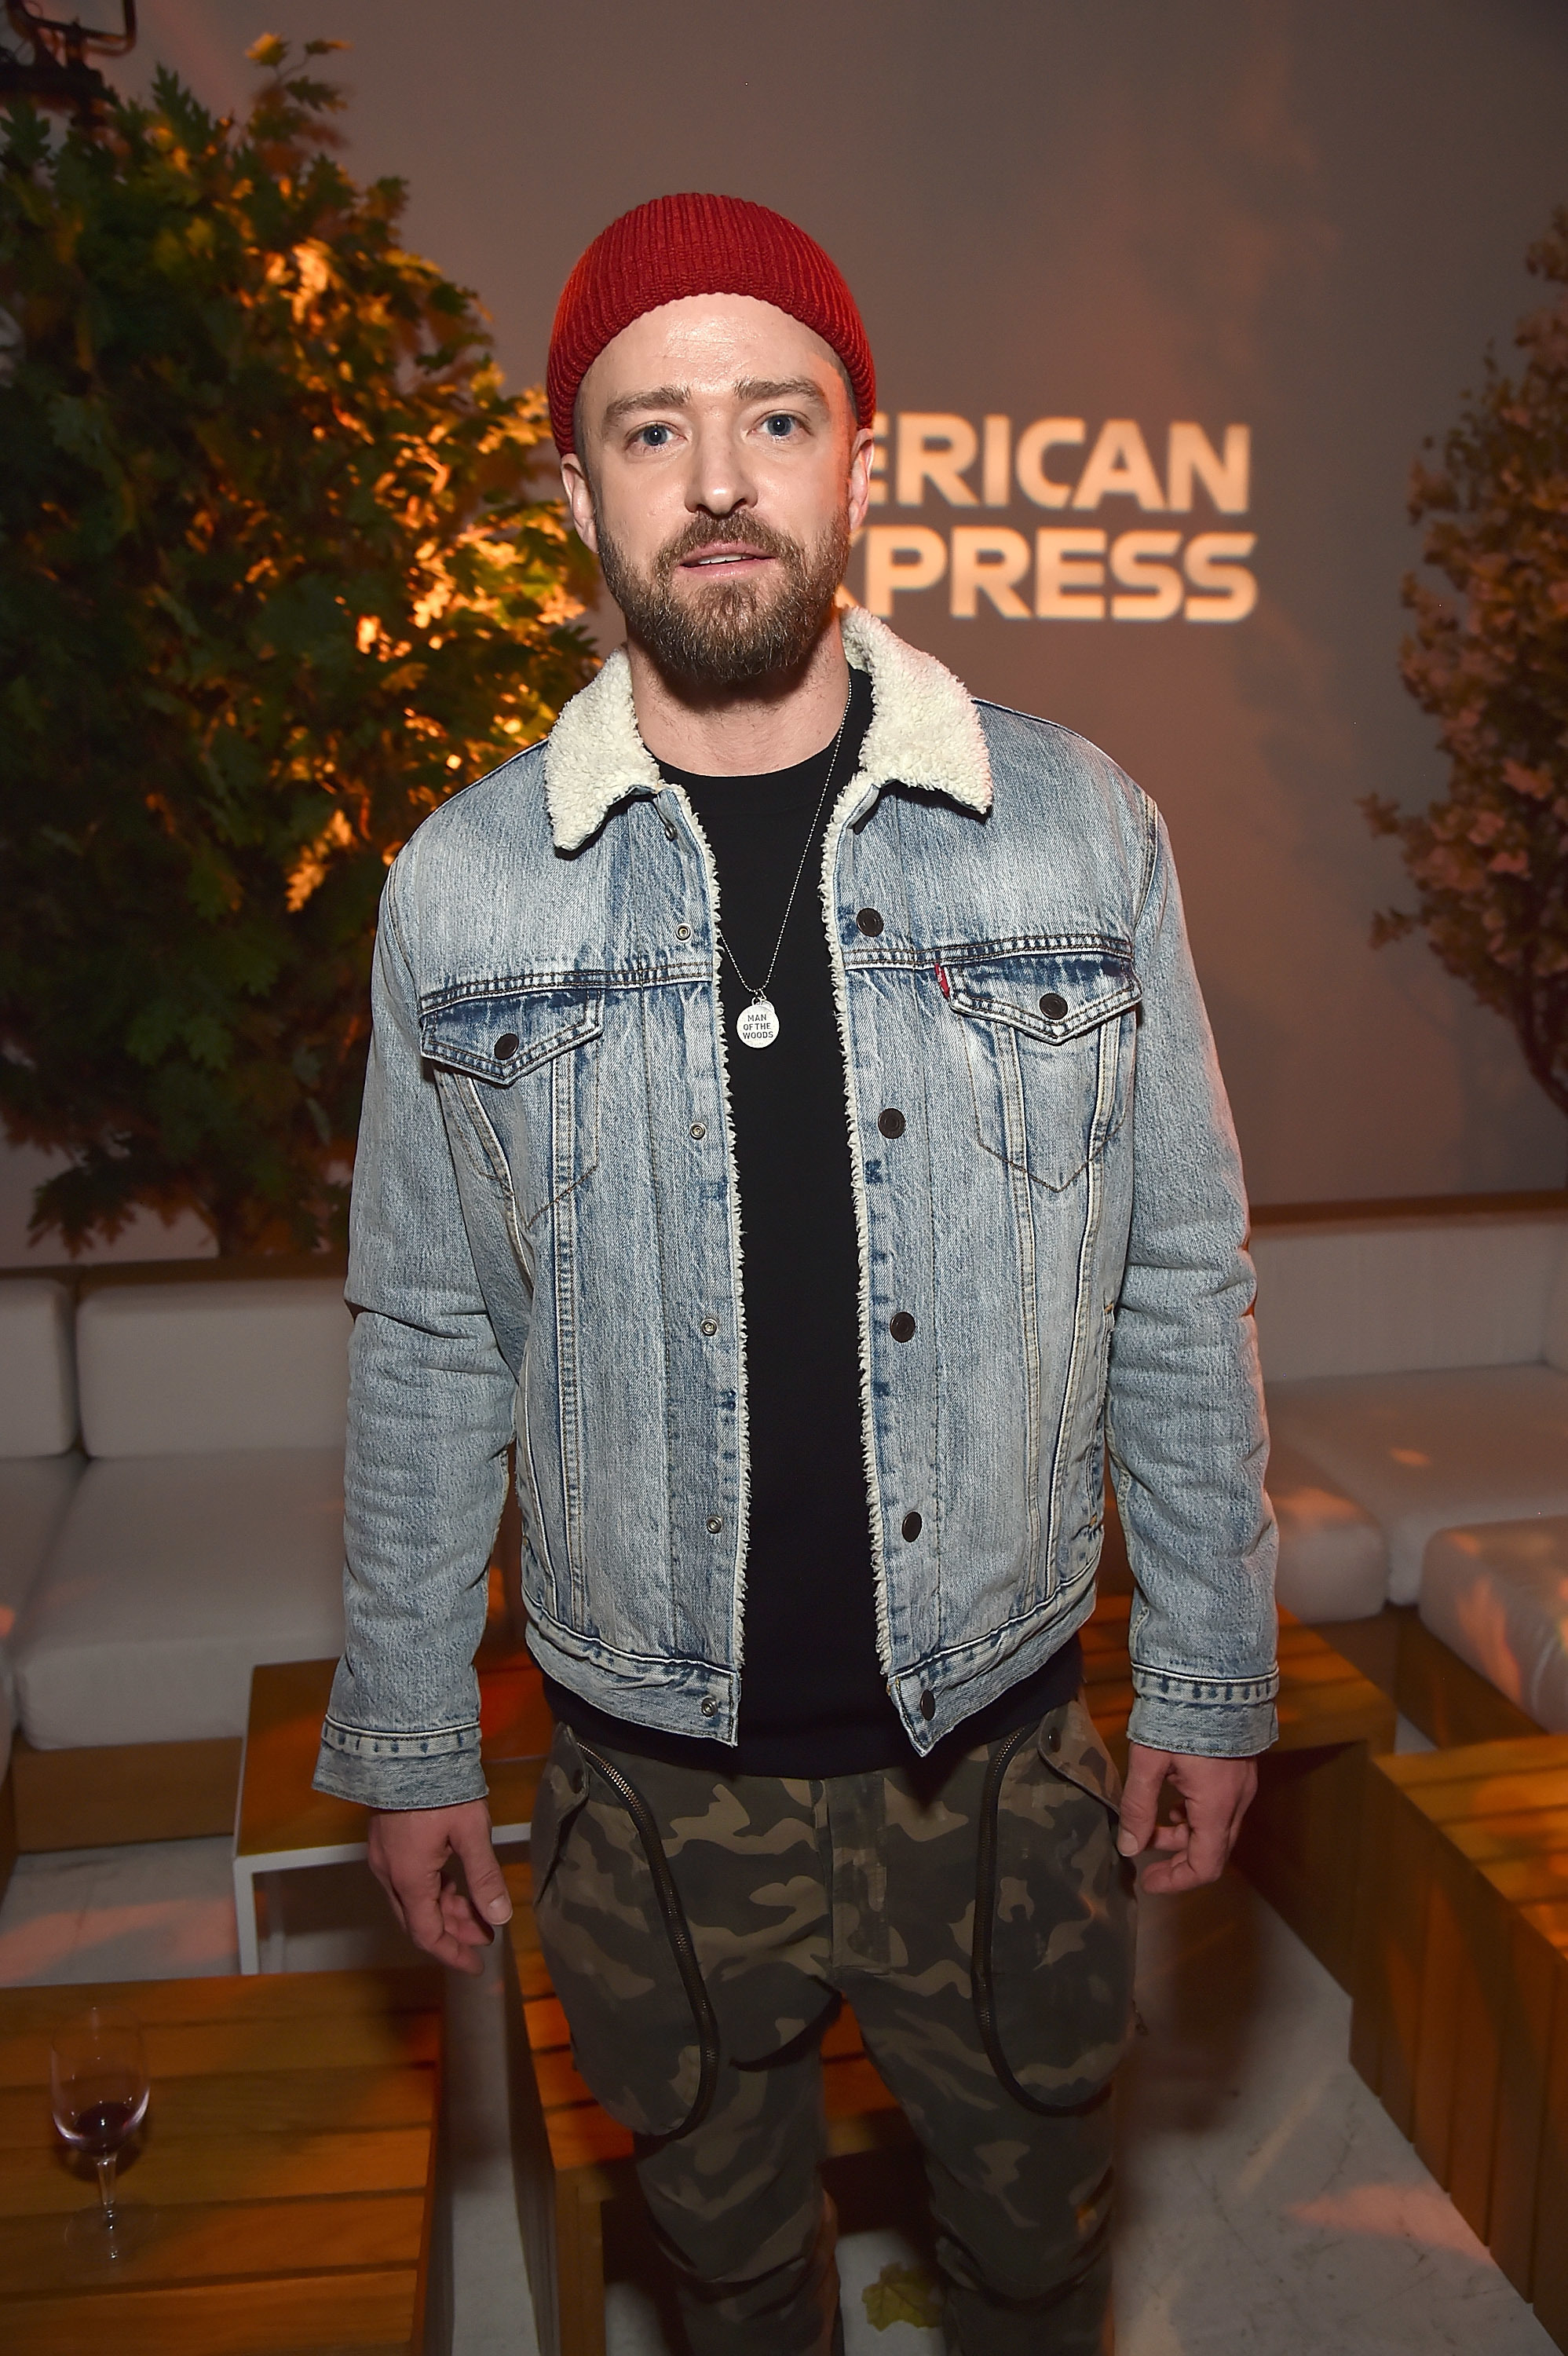 Justin Timberlake brings pizza to popup shop customers